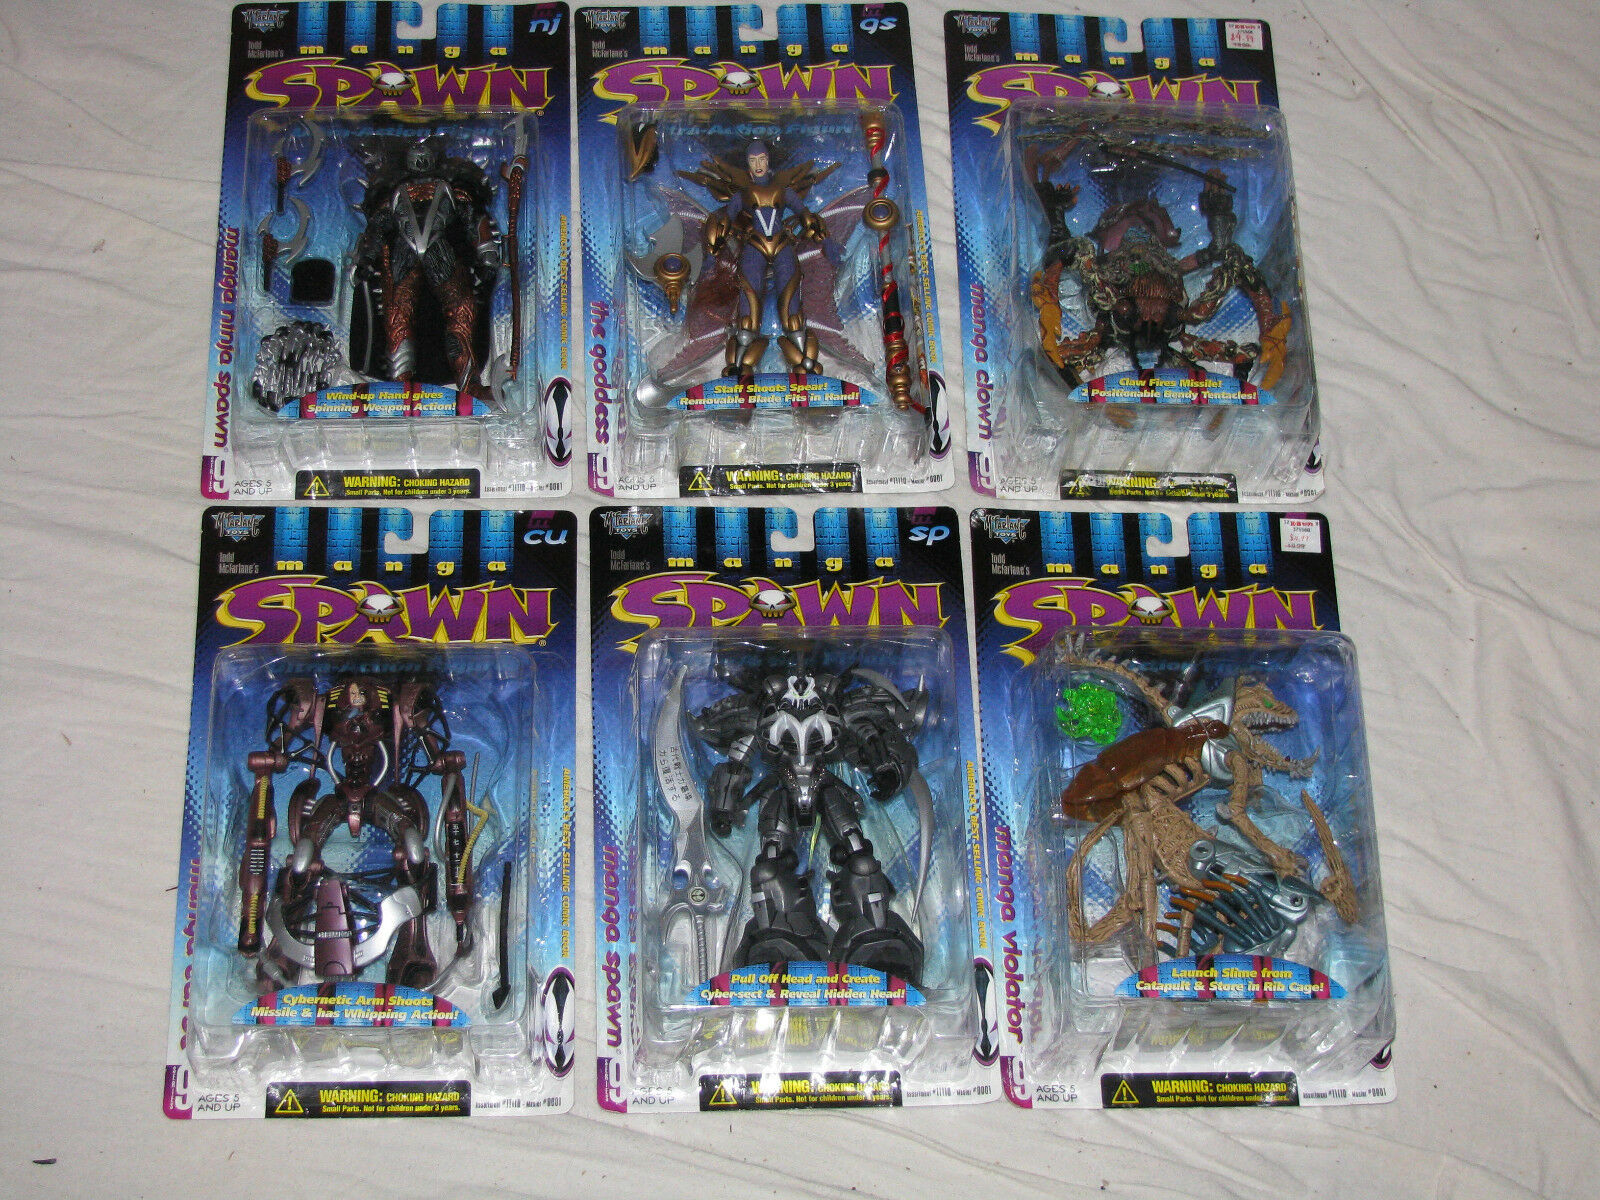 MANGA SPAWN Series 9 Repaint Set - purpletor,Clown,Goddess,Curse,Ninja,Spawn